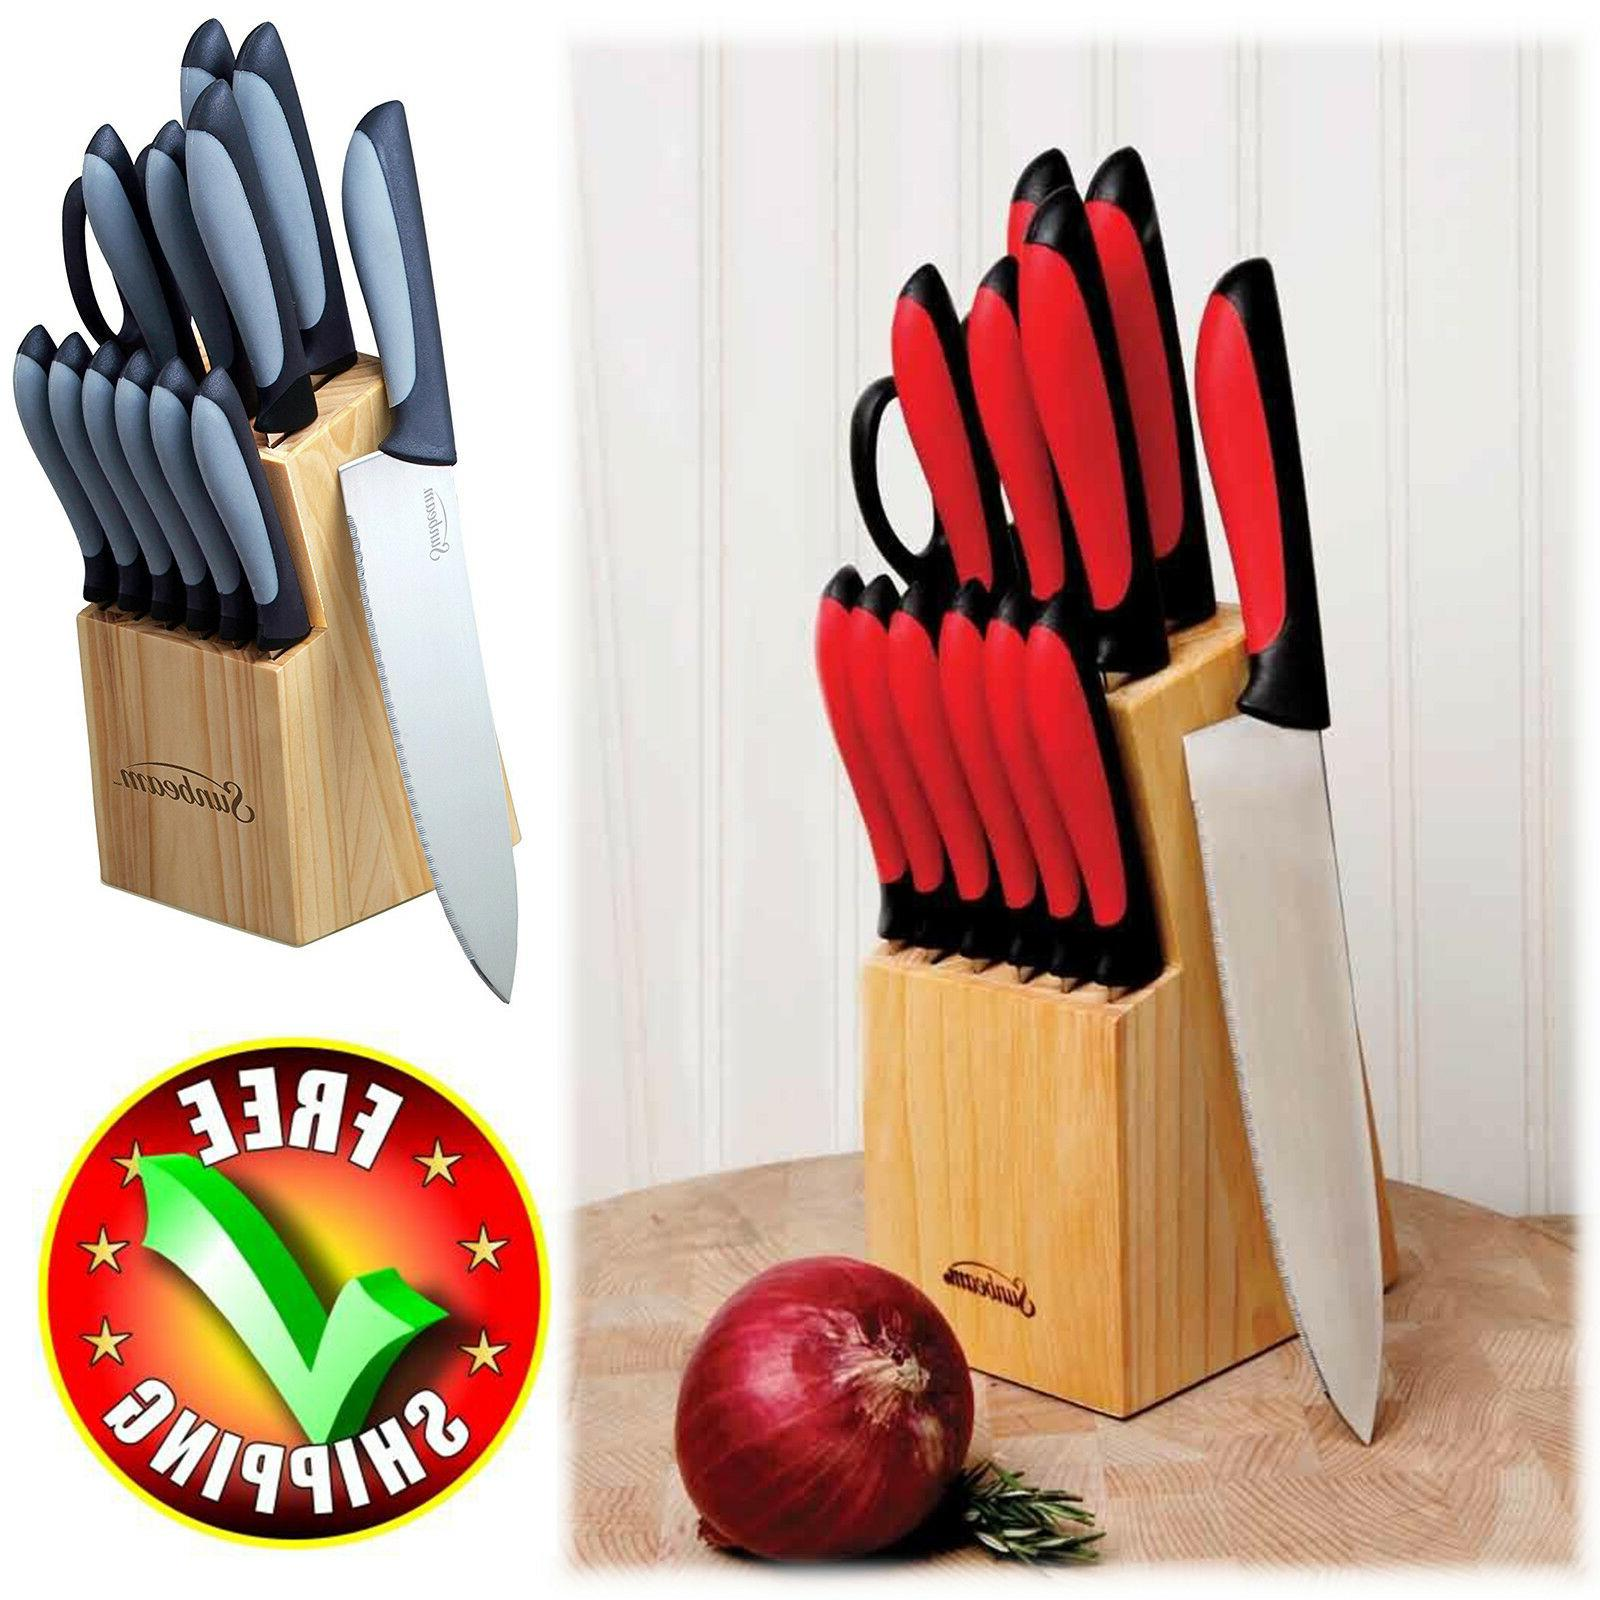 Cutlery Knife Block Set 14-Piece Wood Stainless Steel Chef K